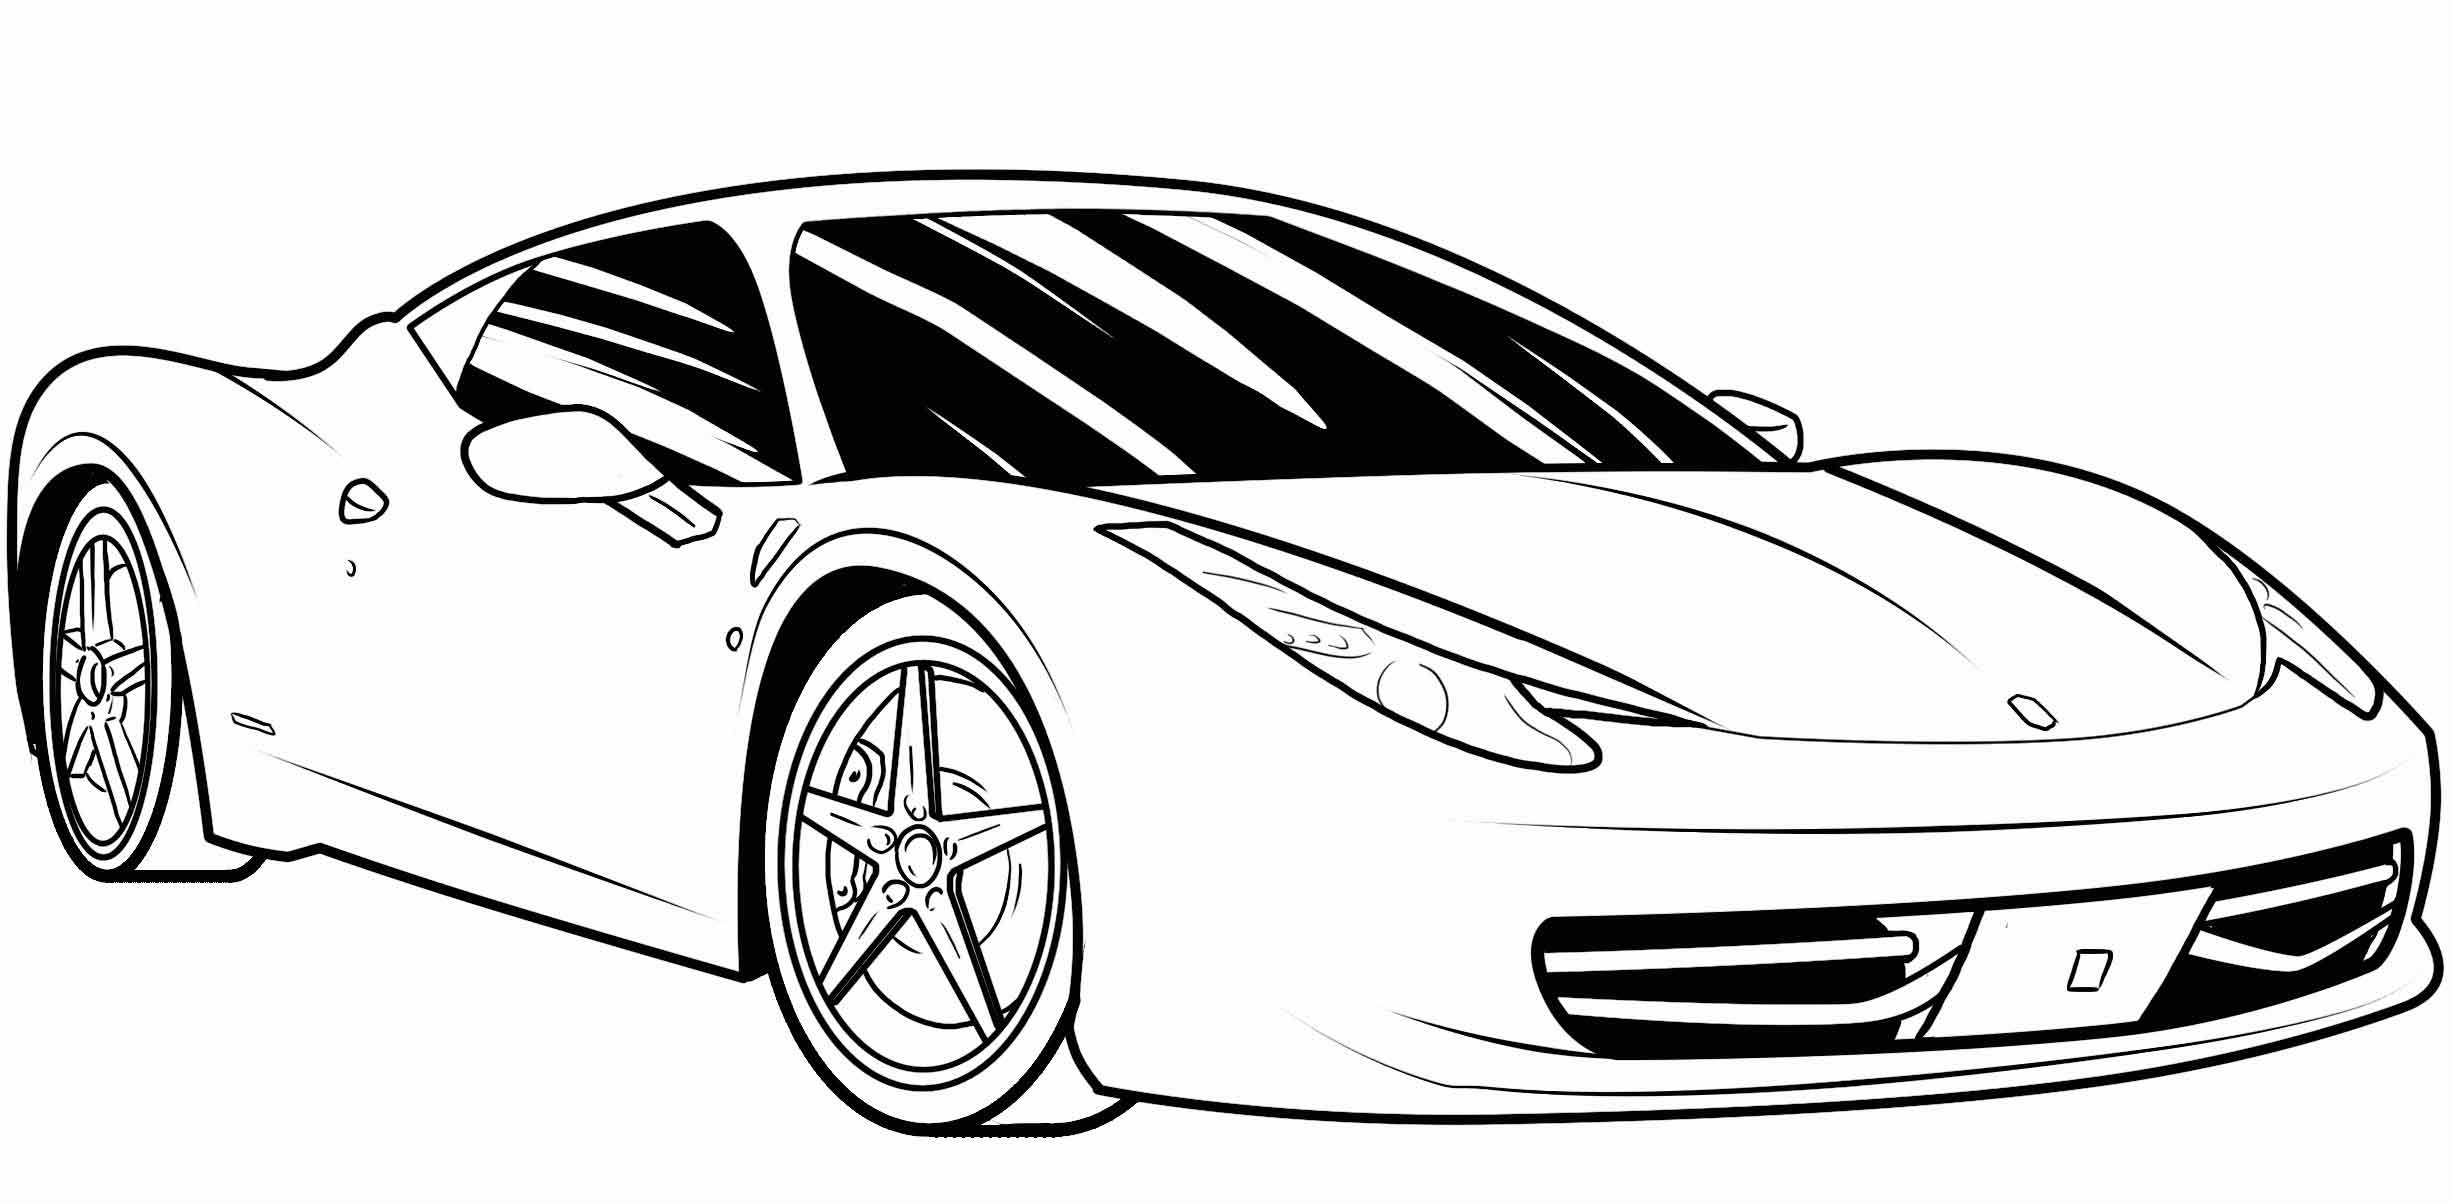 coloring pages of ferrari ferrari coloring pages to download and print for free ferrari coloring of pages